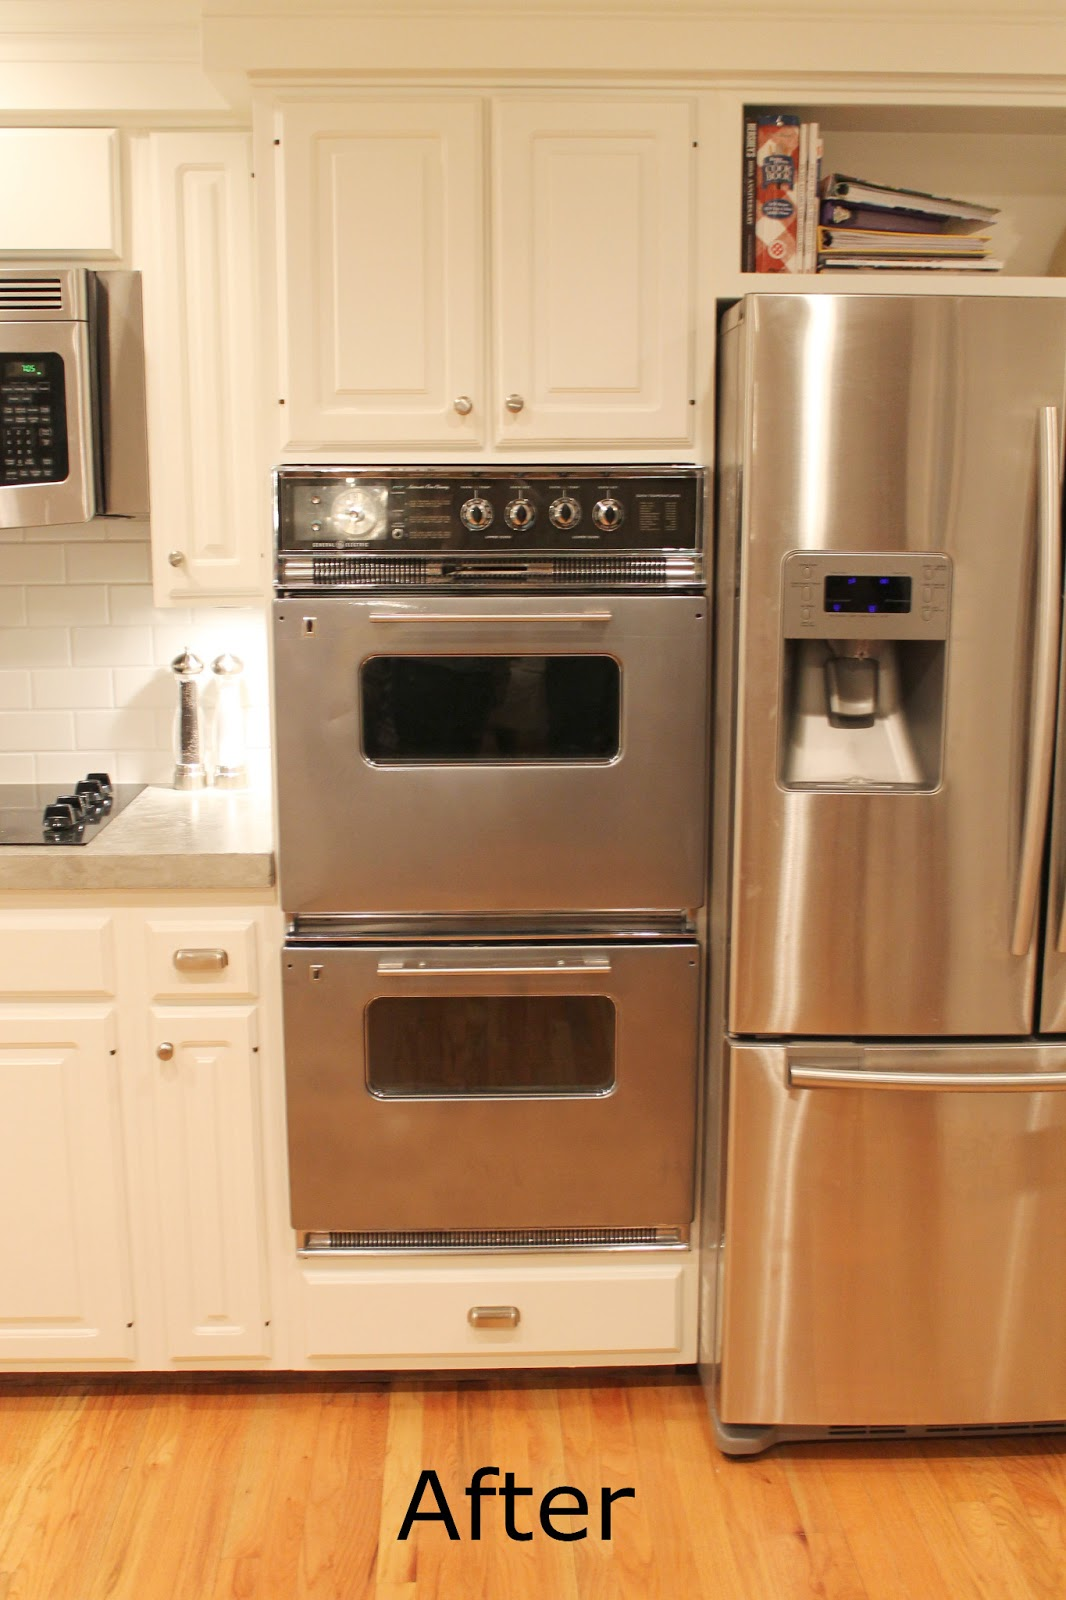 daly designs: Before & After | 70's Double Ovens Spraypainted